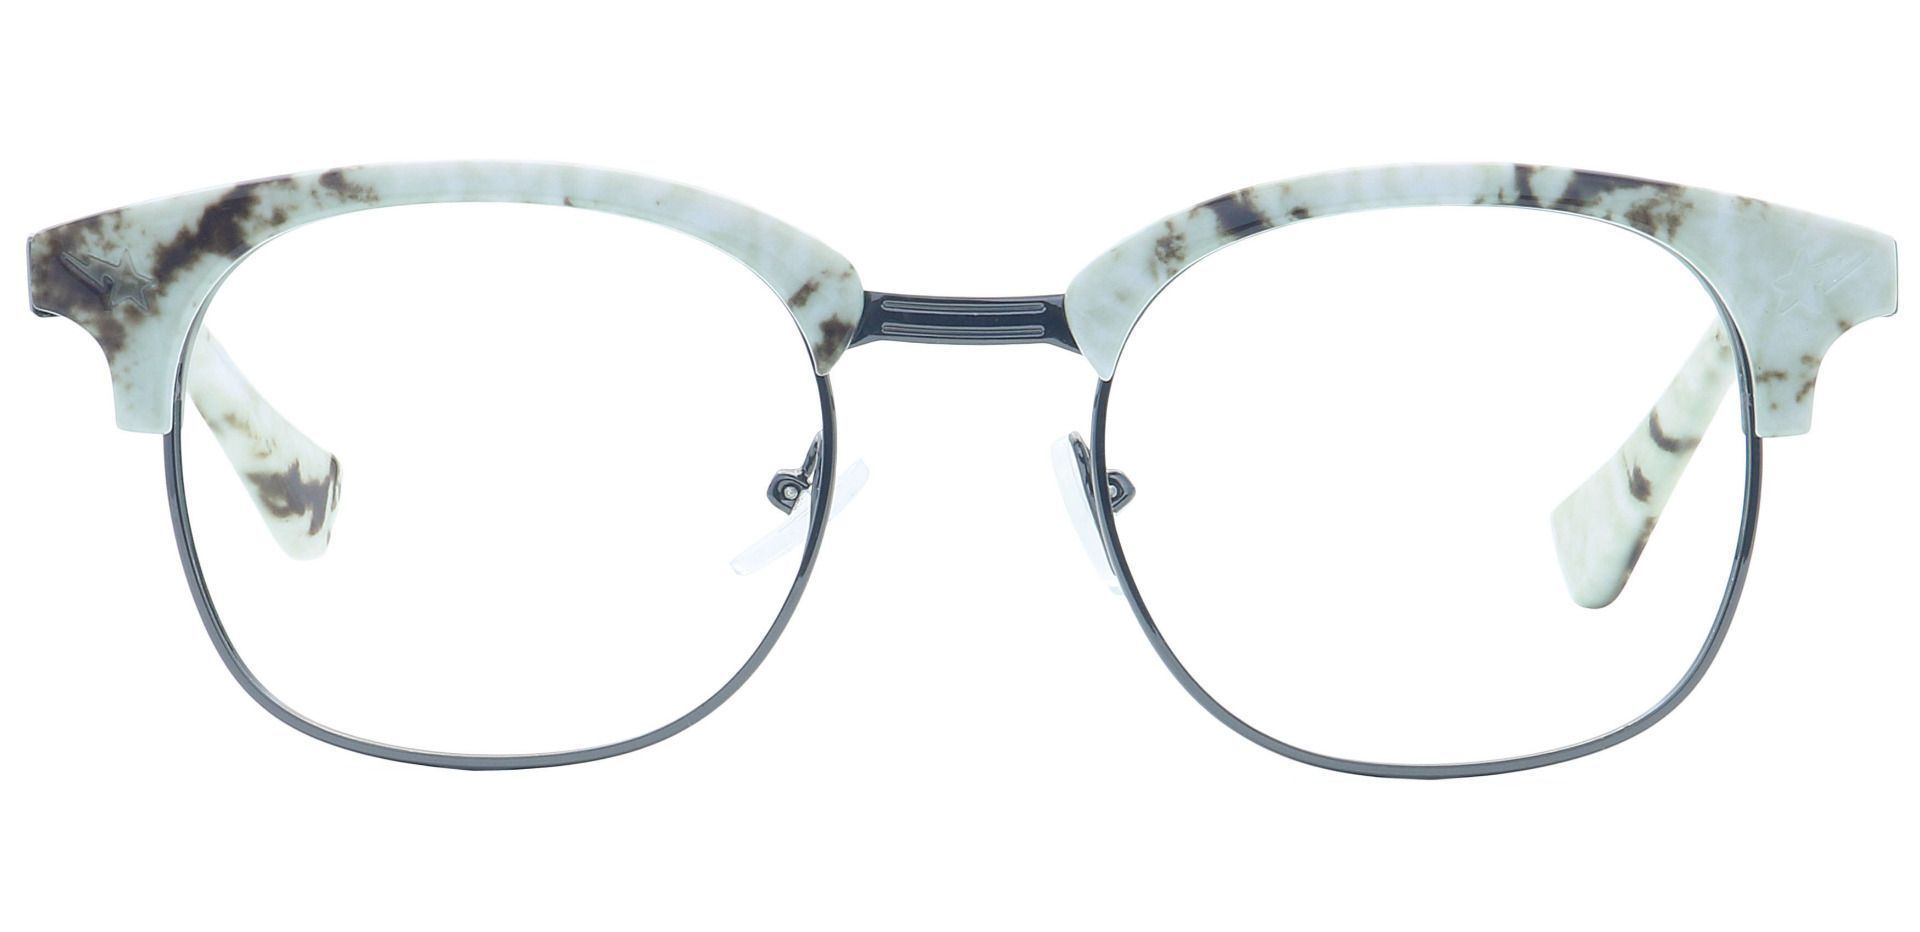 Neptune Browline Lined Bifocal Glasses - White